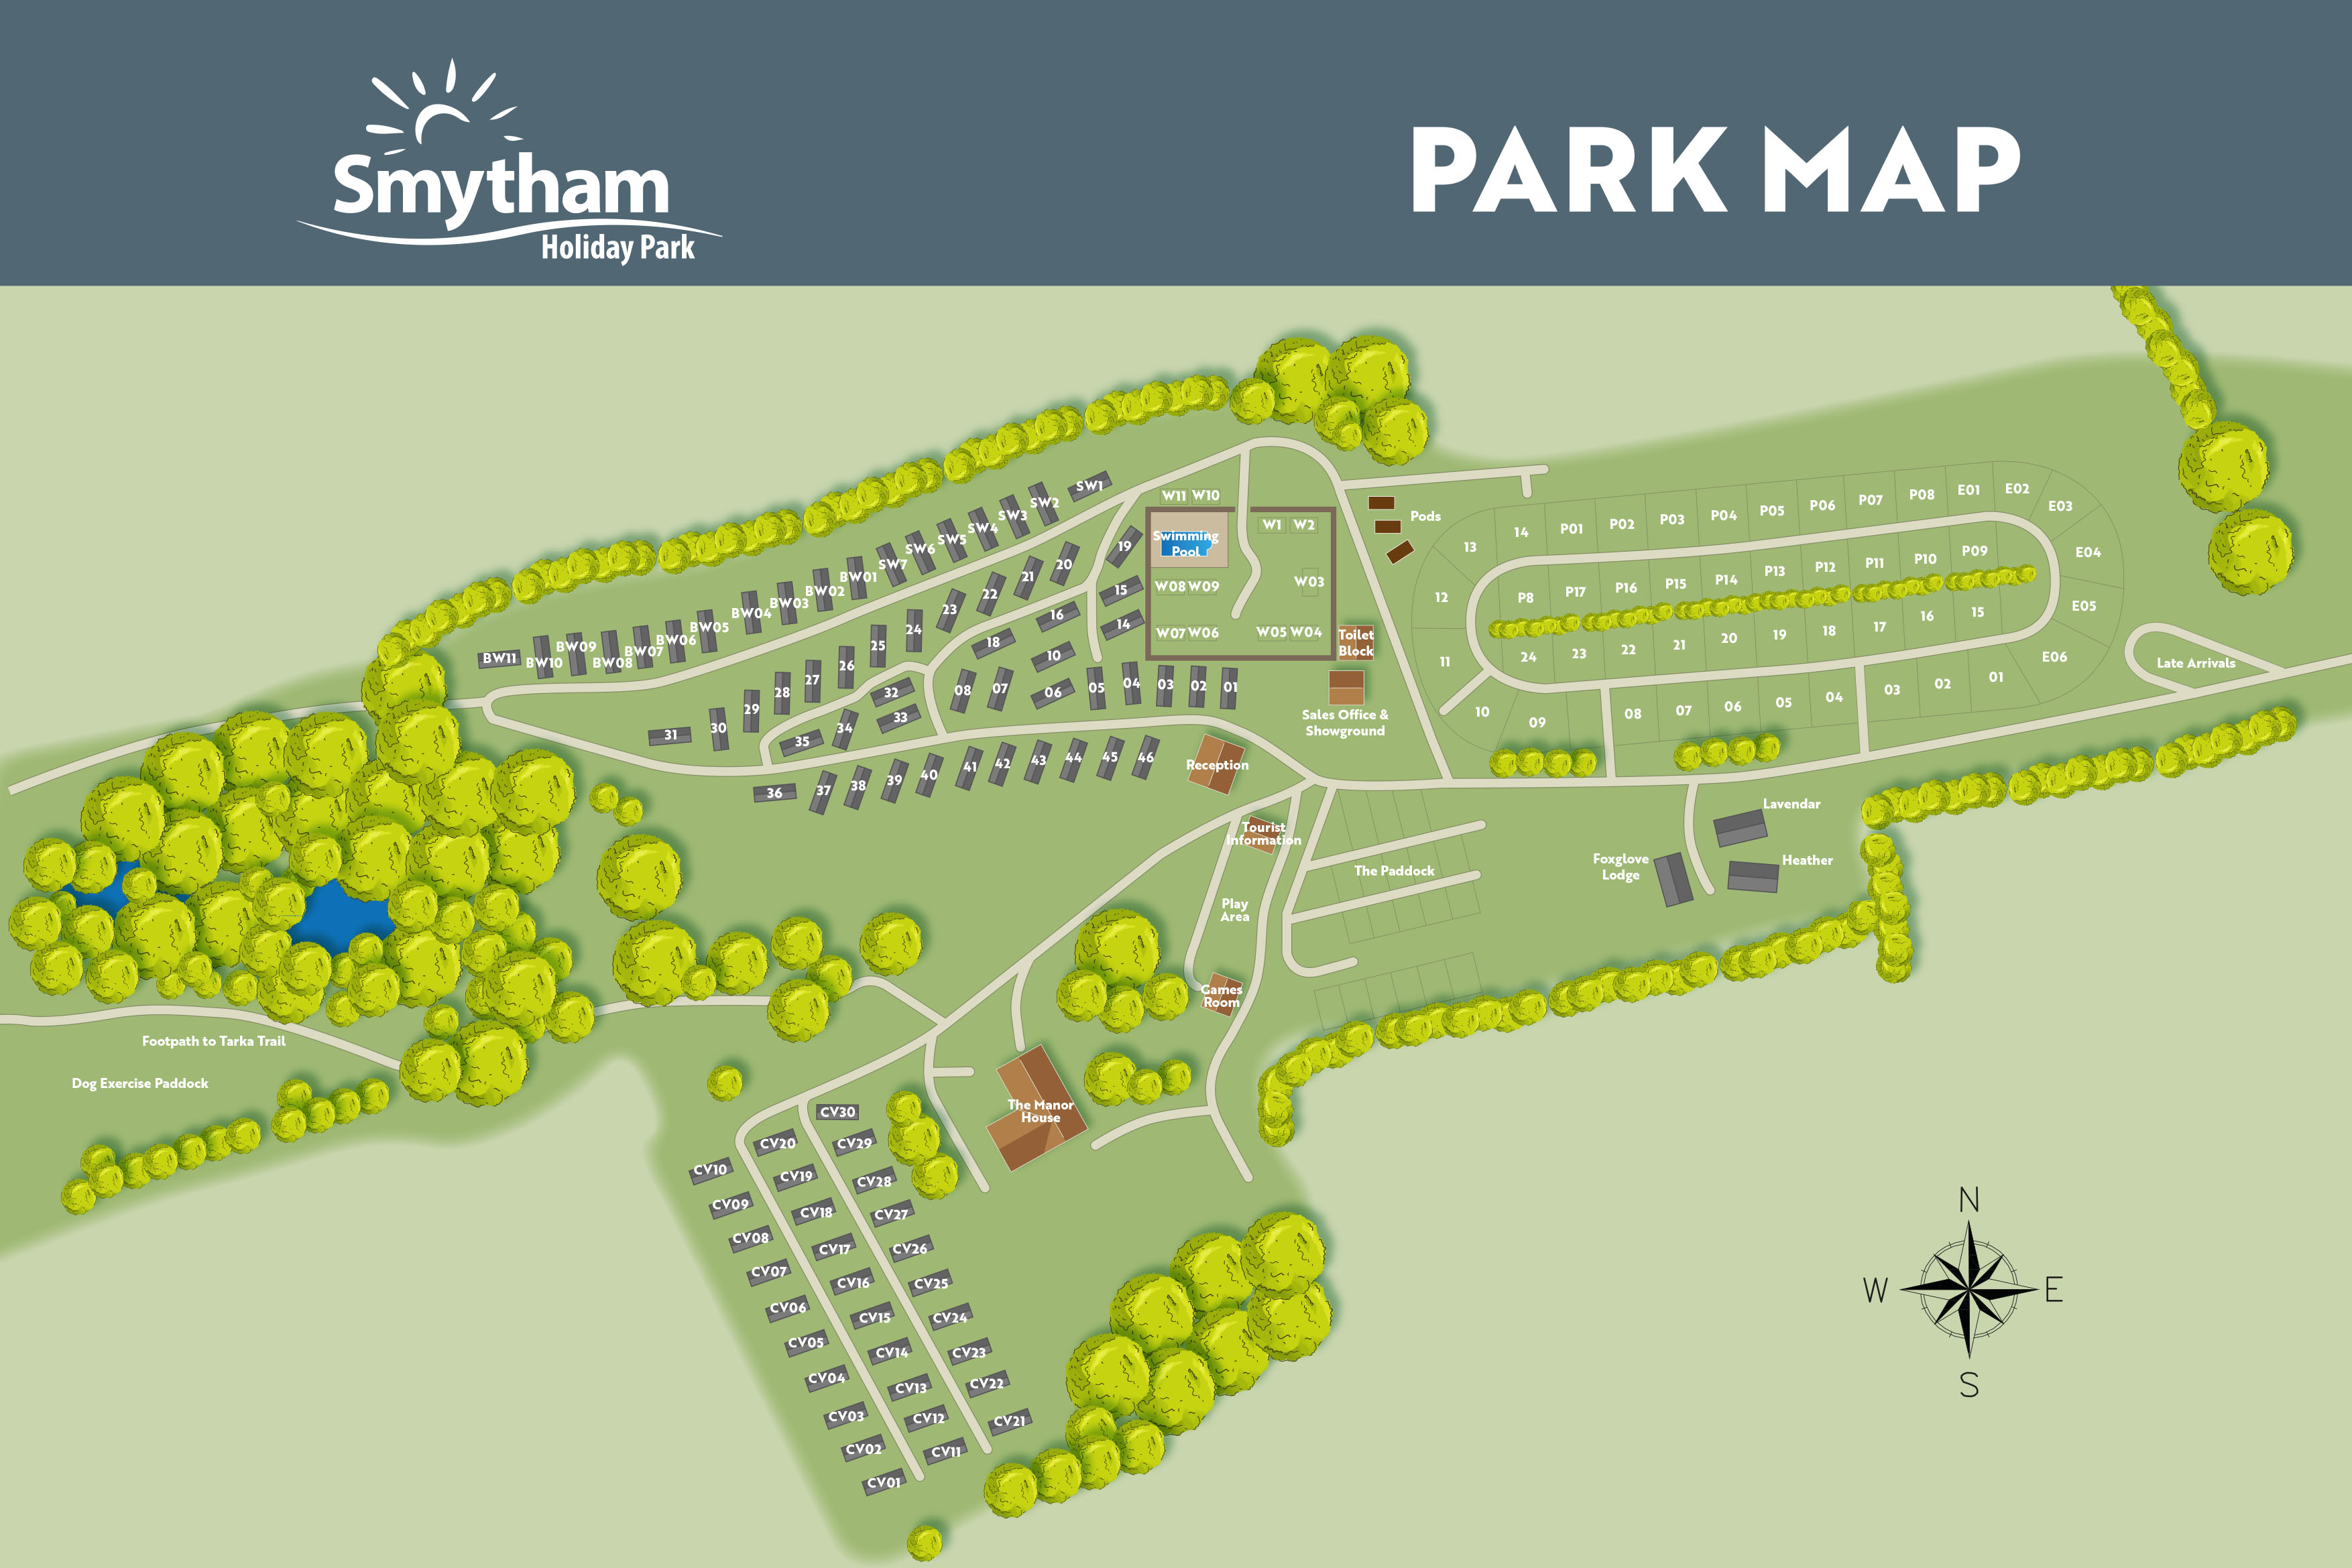 Park Map at Smytham Holiday Park